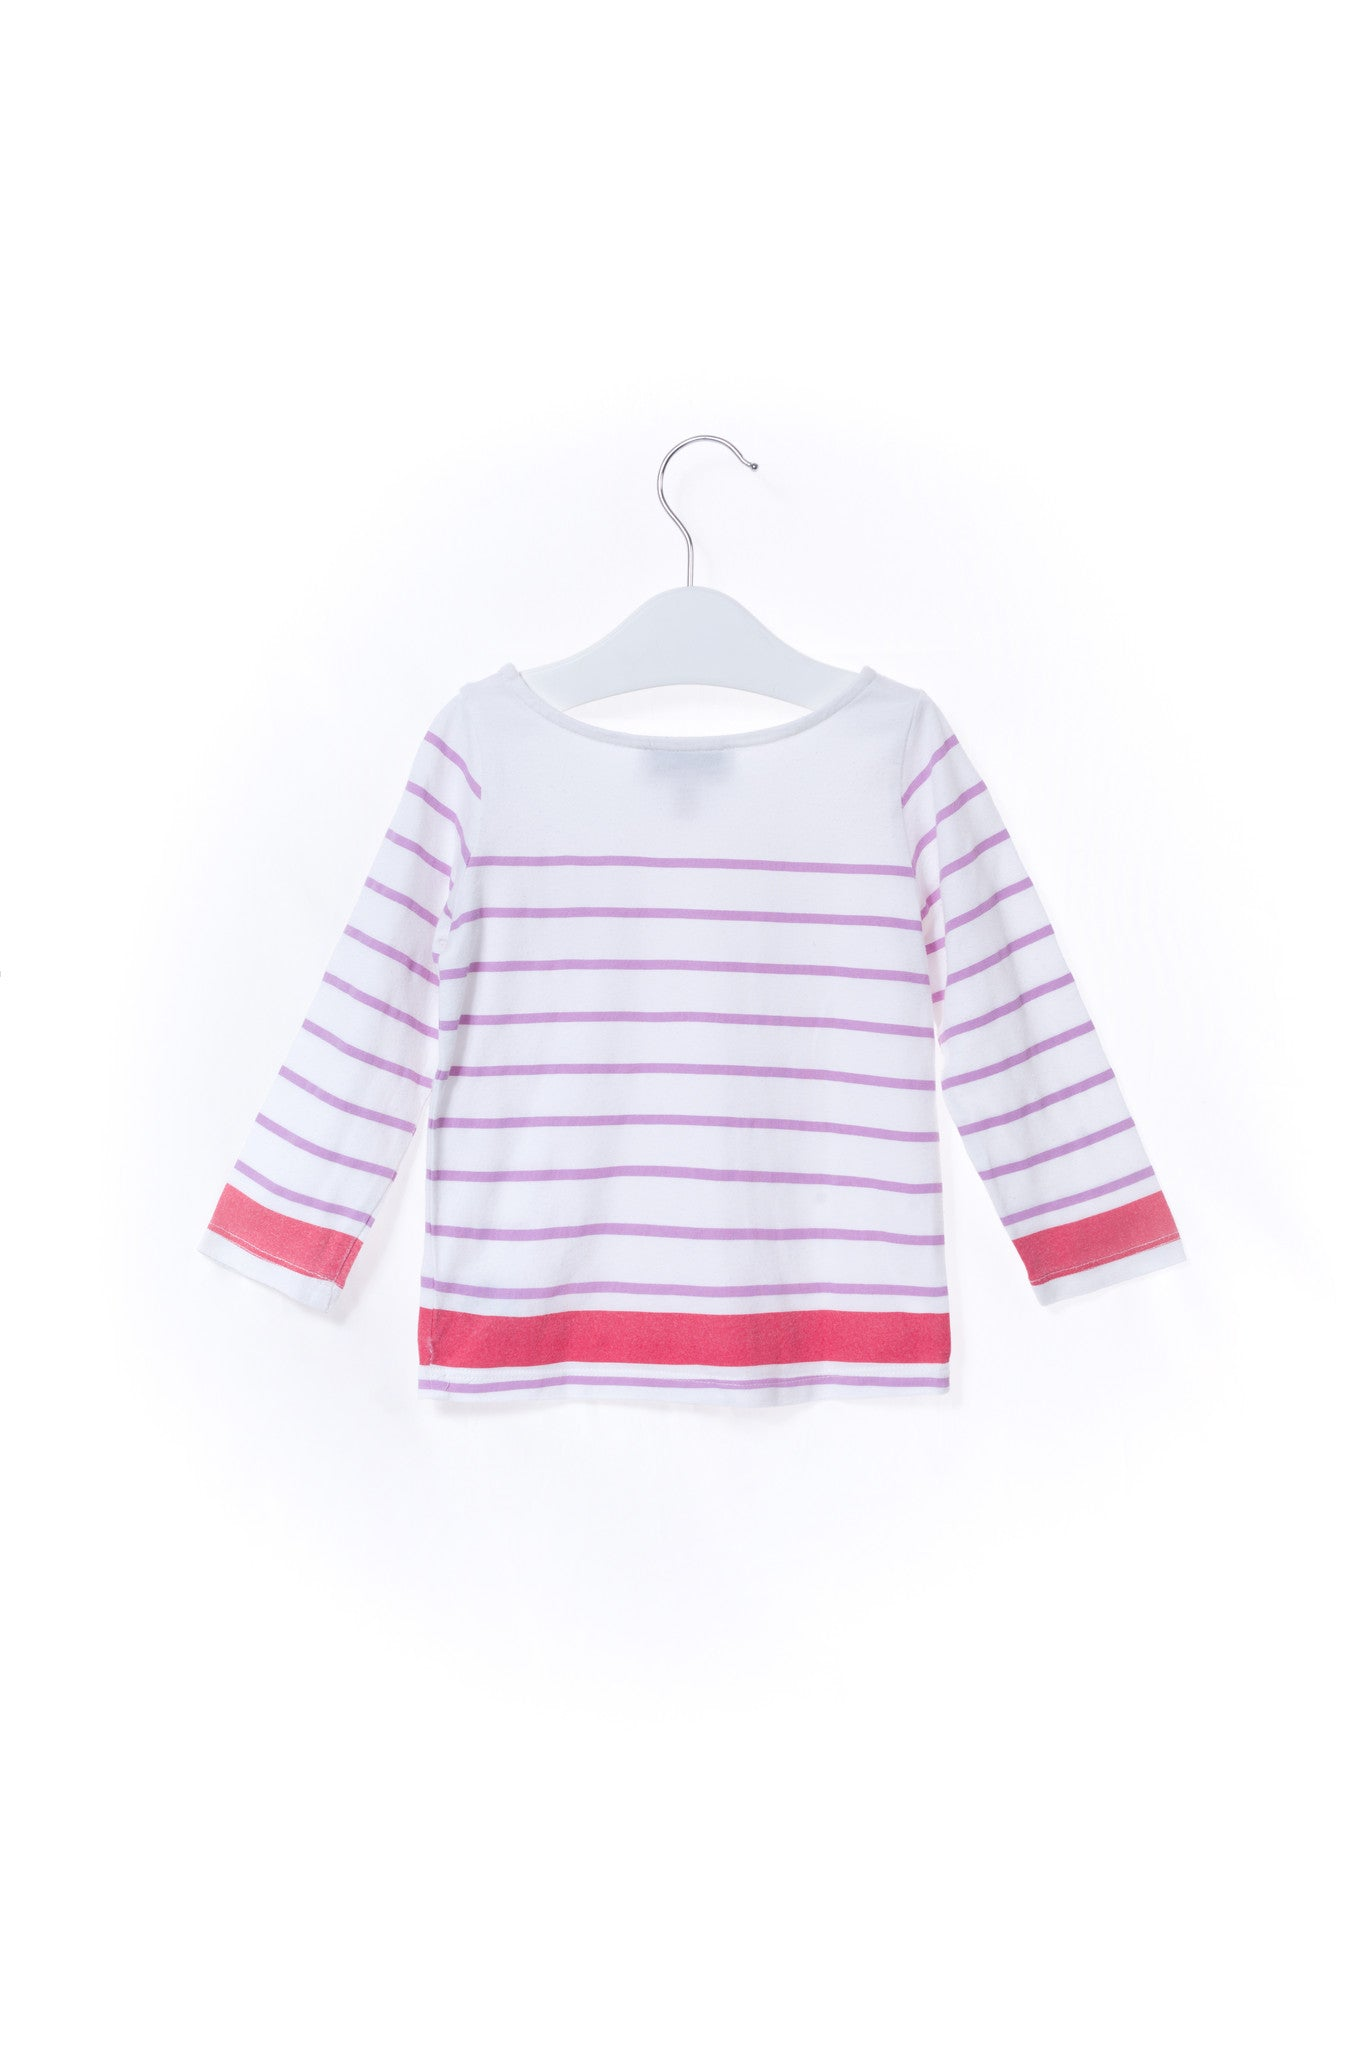 10001006 Juicy Couture Baby~Top 12-18M at Retykle